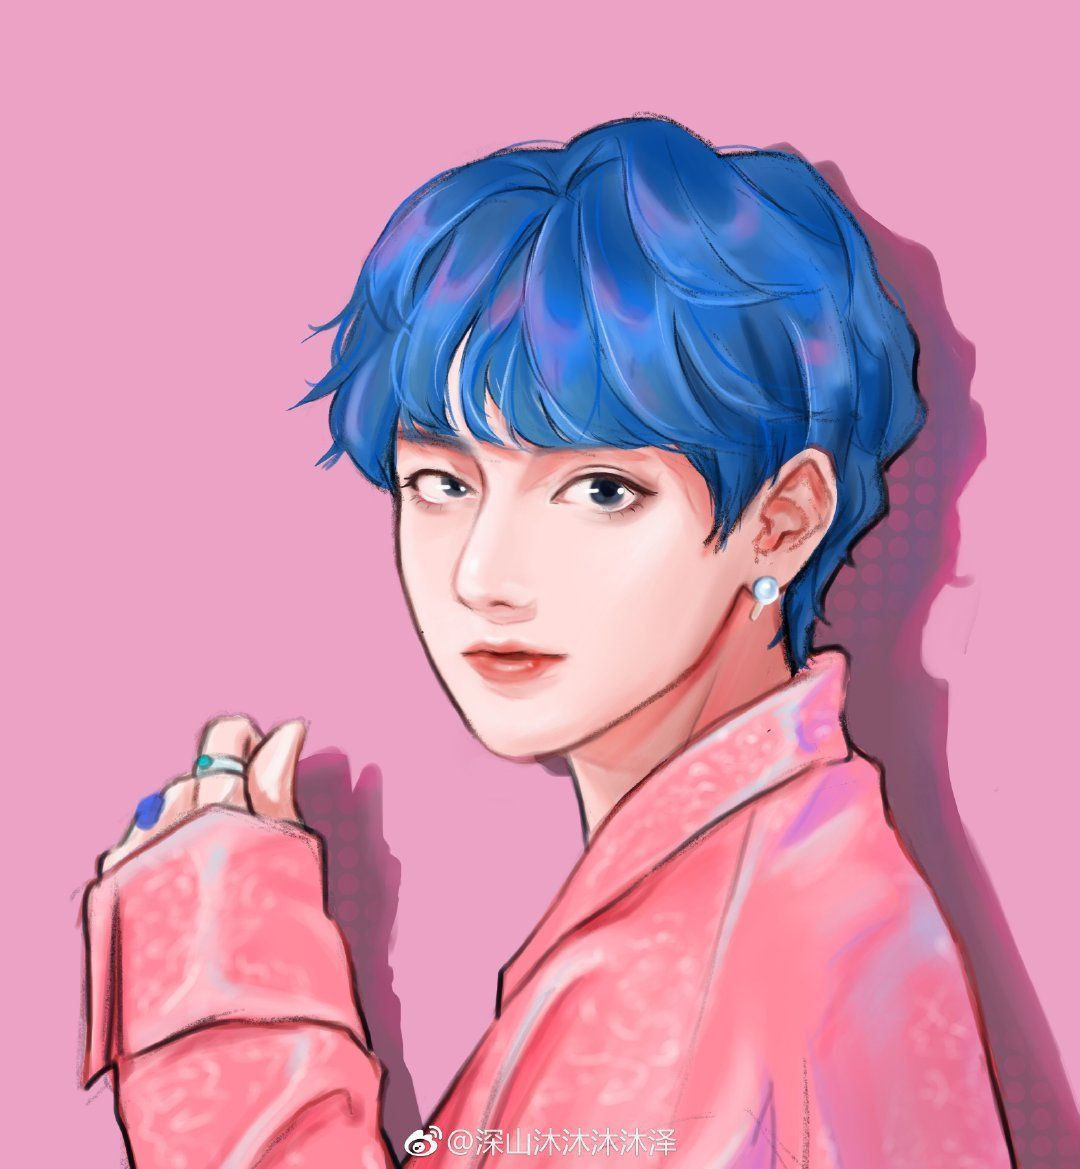 Looking Cool Baby Looking Cool Baby Animefantasy Animehair Animenaruto Baby Btsanime Cool In 2020 Taehyung Fanart Bts Fanart Bts Drawings